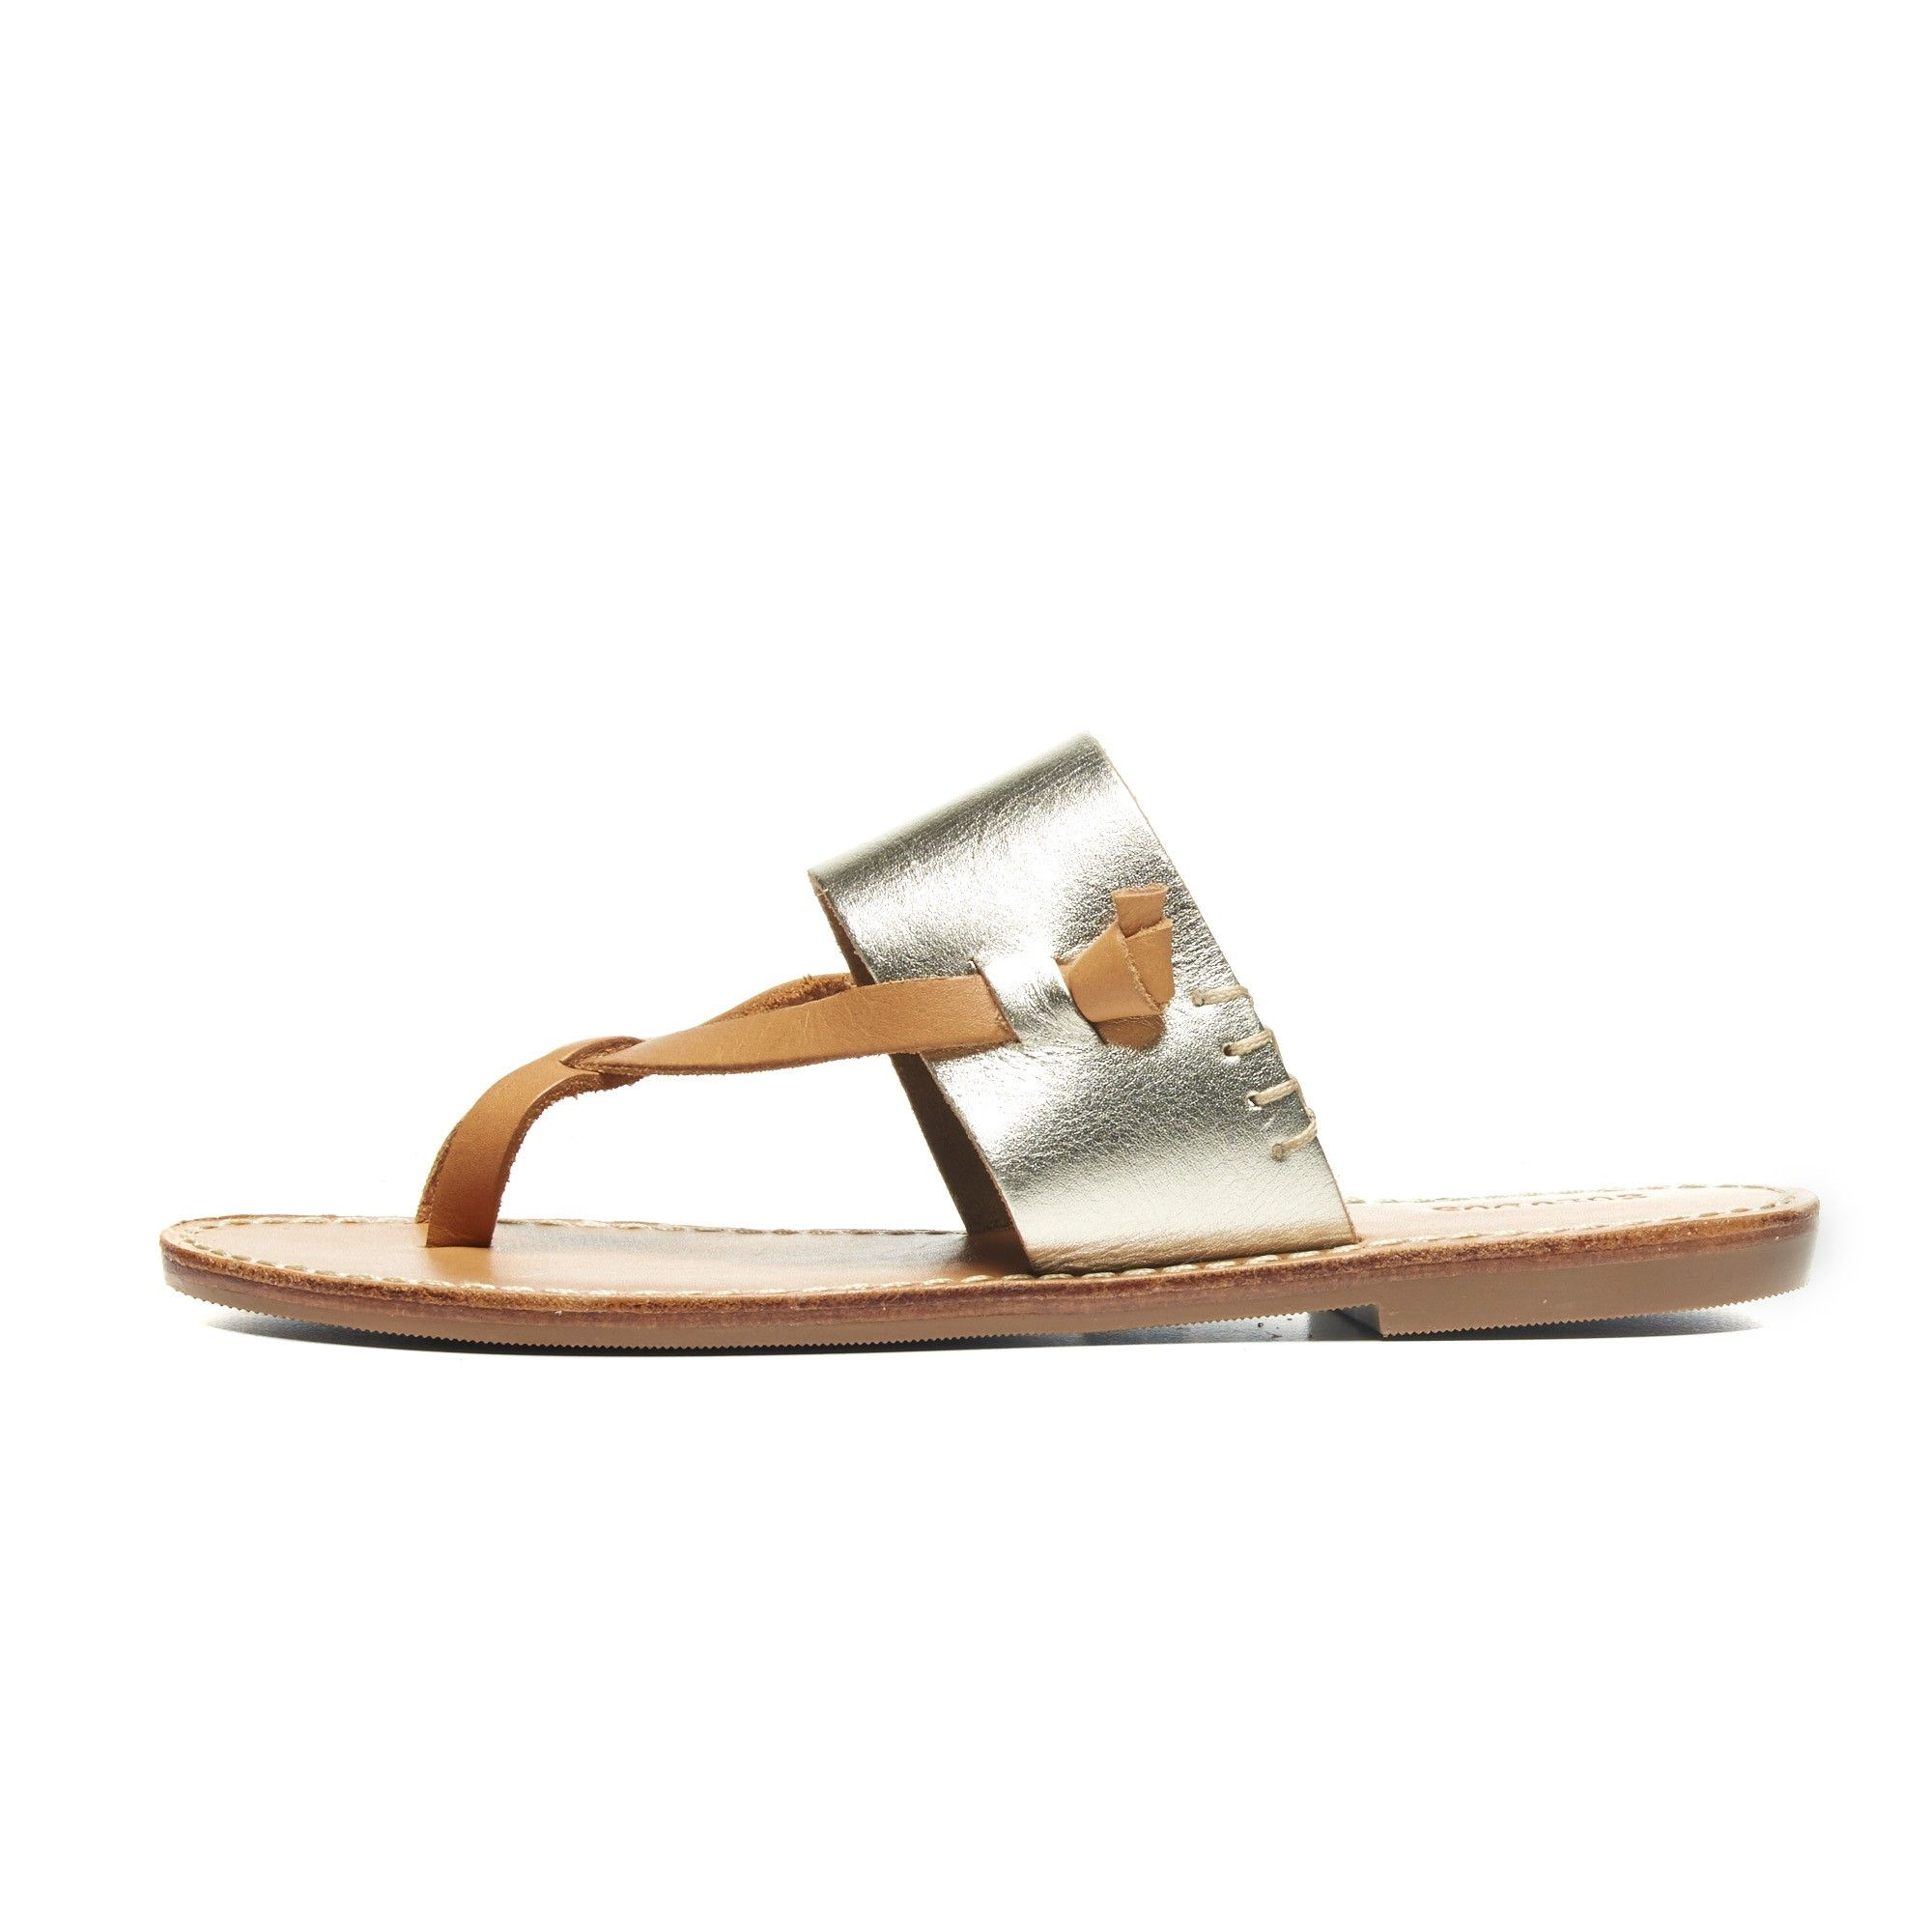 7b952febea3 Soludos Metallic Leather Slotted Thong Sandal in Platinum - Soludos  Espadrilles